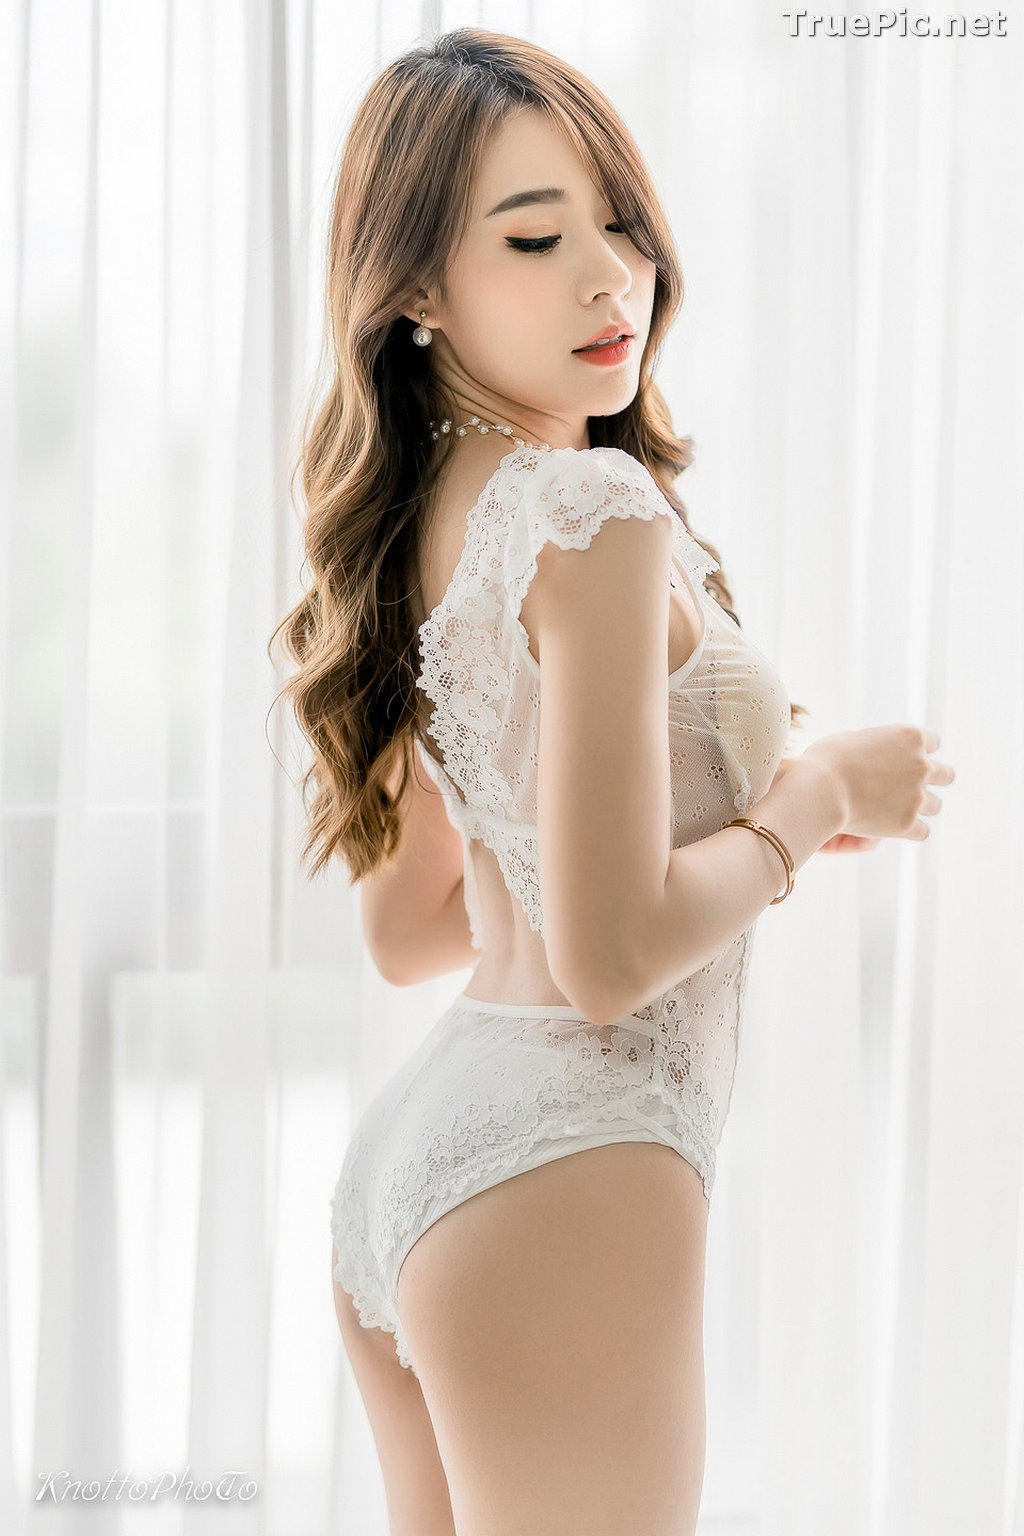 Image Thailand Hot Beauty Model - Thipsuda Jitaree - White Lace Underwear - TruePic.net - Picture-8